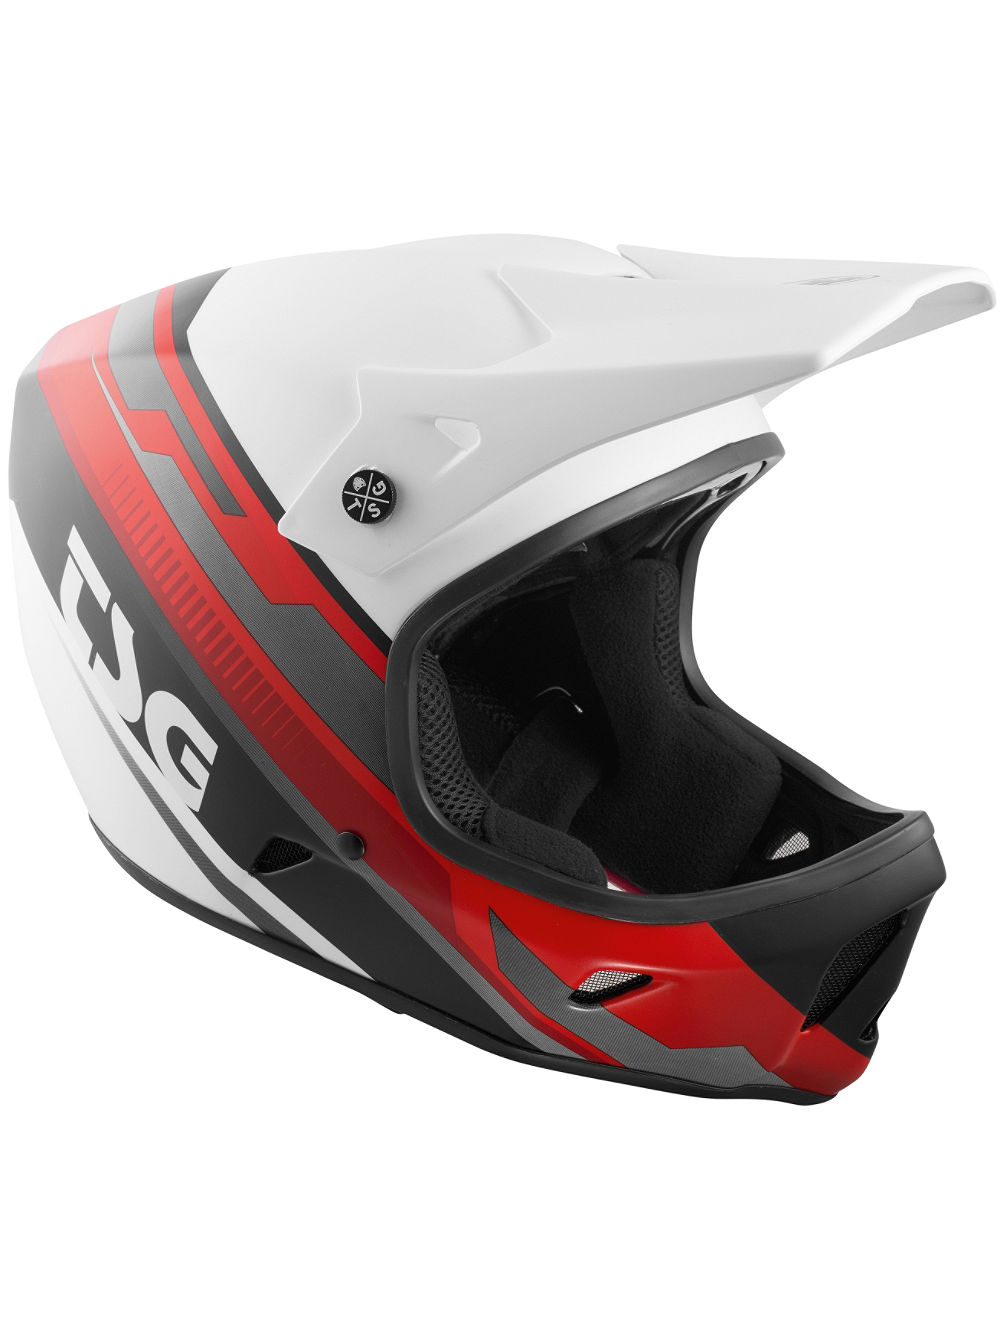 Advance Graphic Design Bike Helm